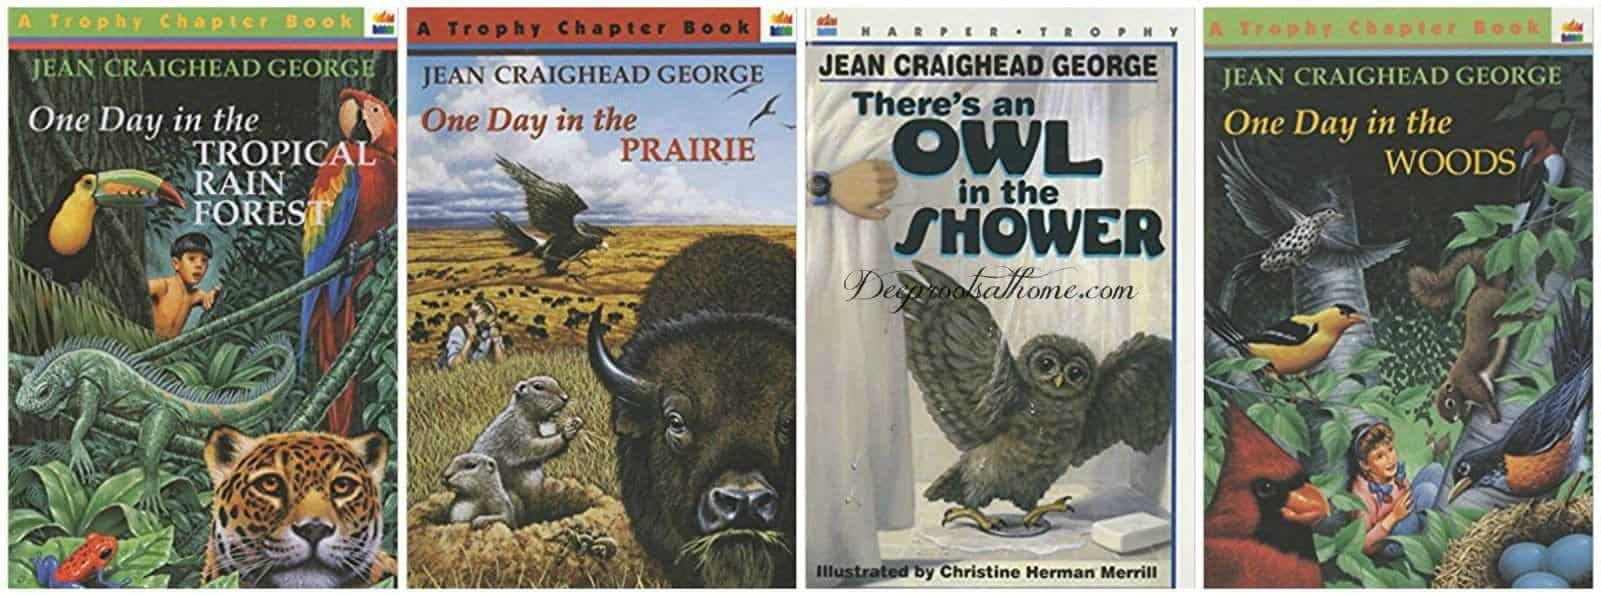 57 K - Gr. 5 True Story Nature & Science Books For Curious Kids. 4 Jean Craighead George books on the reading list.